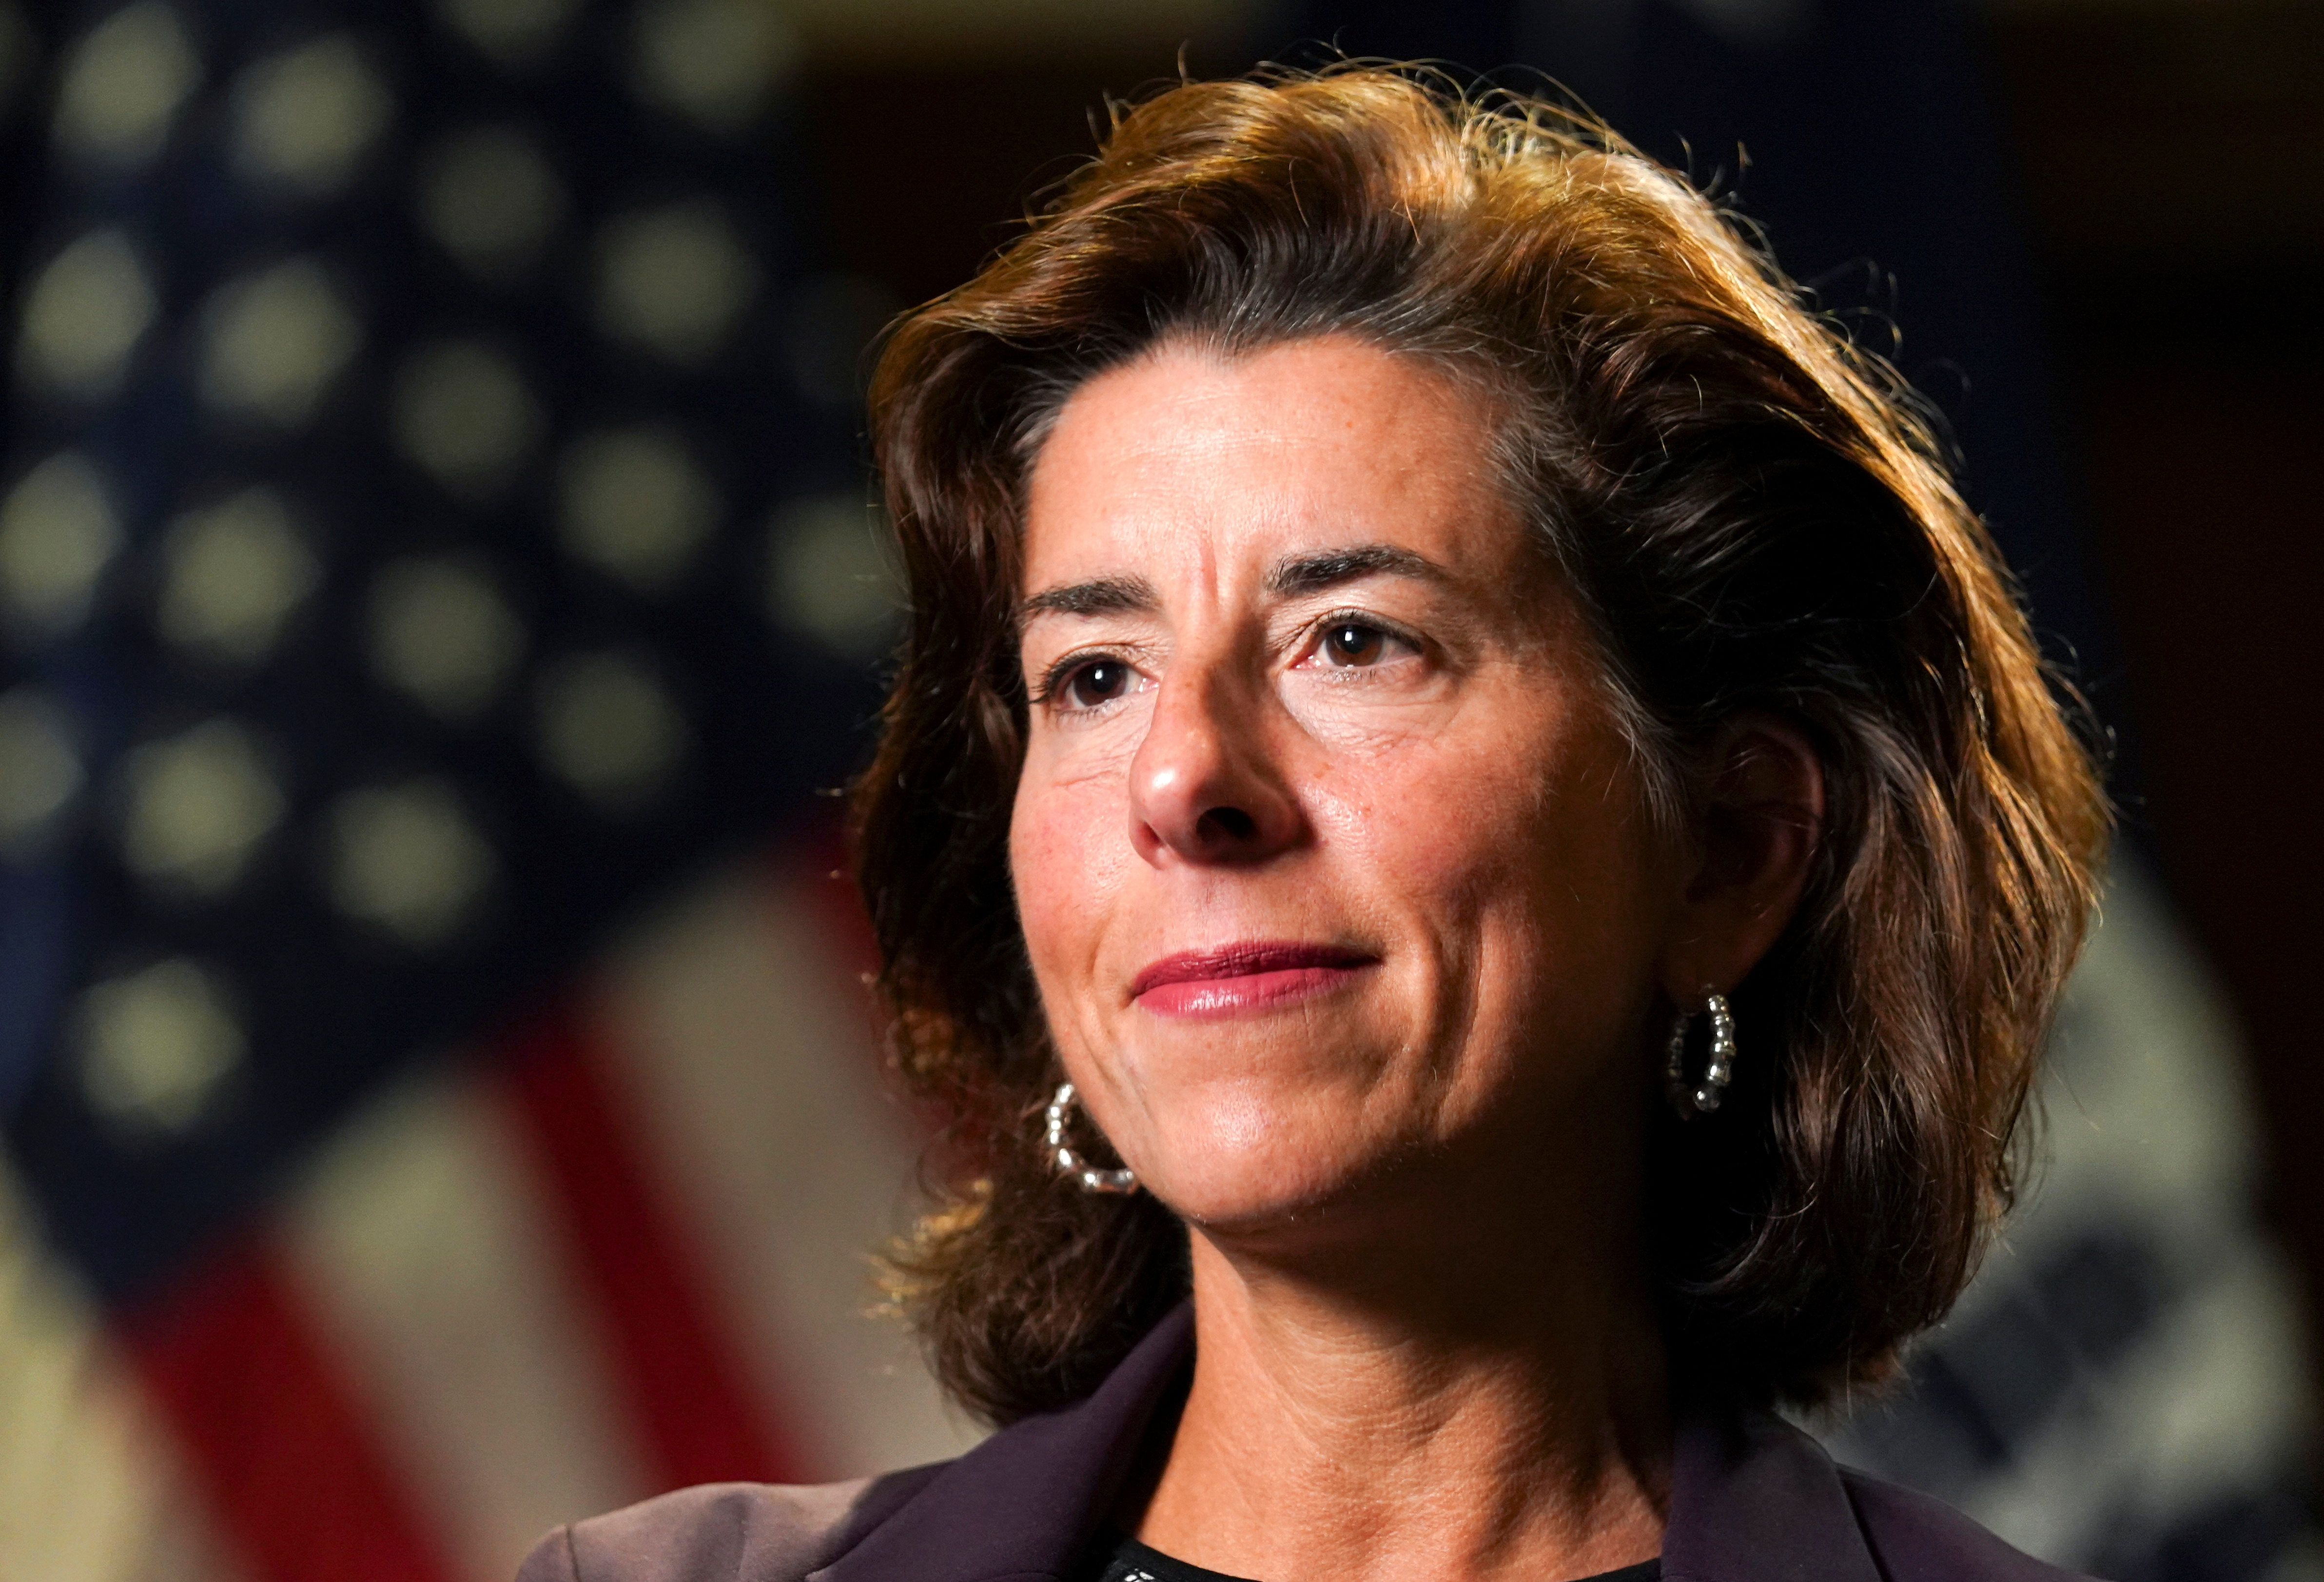 U.S. Commerce Secretary Gina Raimondo listens to a question during an interview with Reuters at the Department of Commerce in Washington U.S., September 23, 2021. REUTERS/Kevin Lamarque